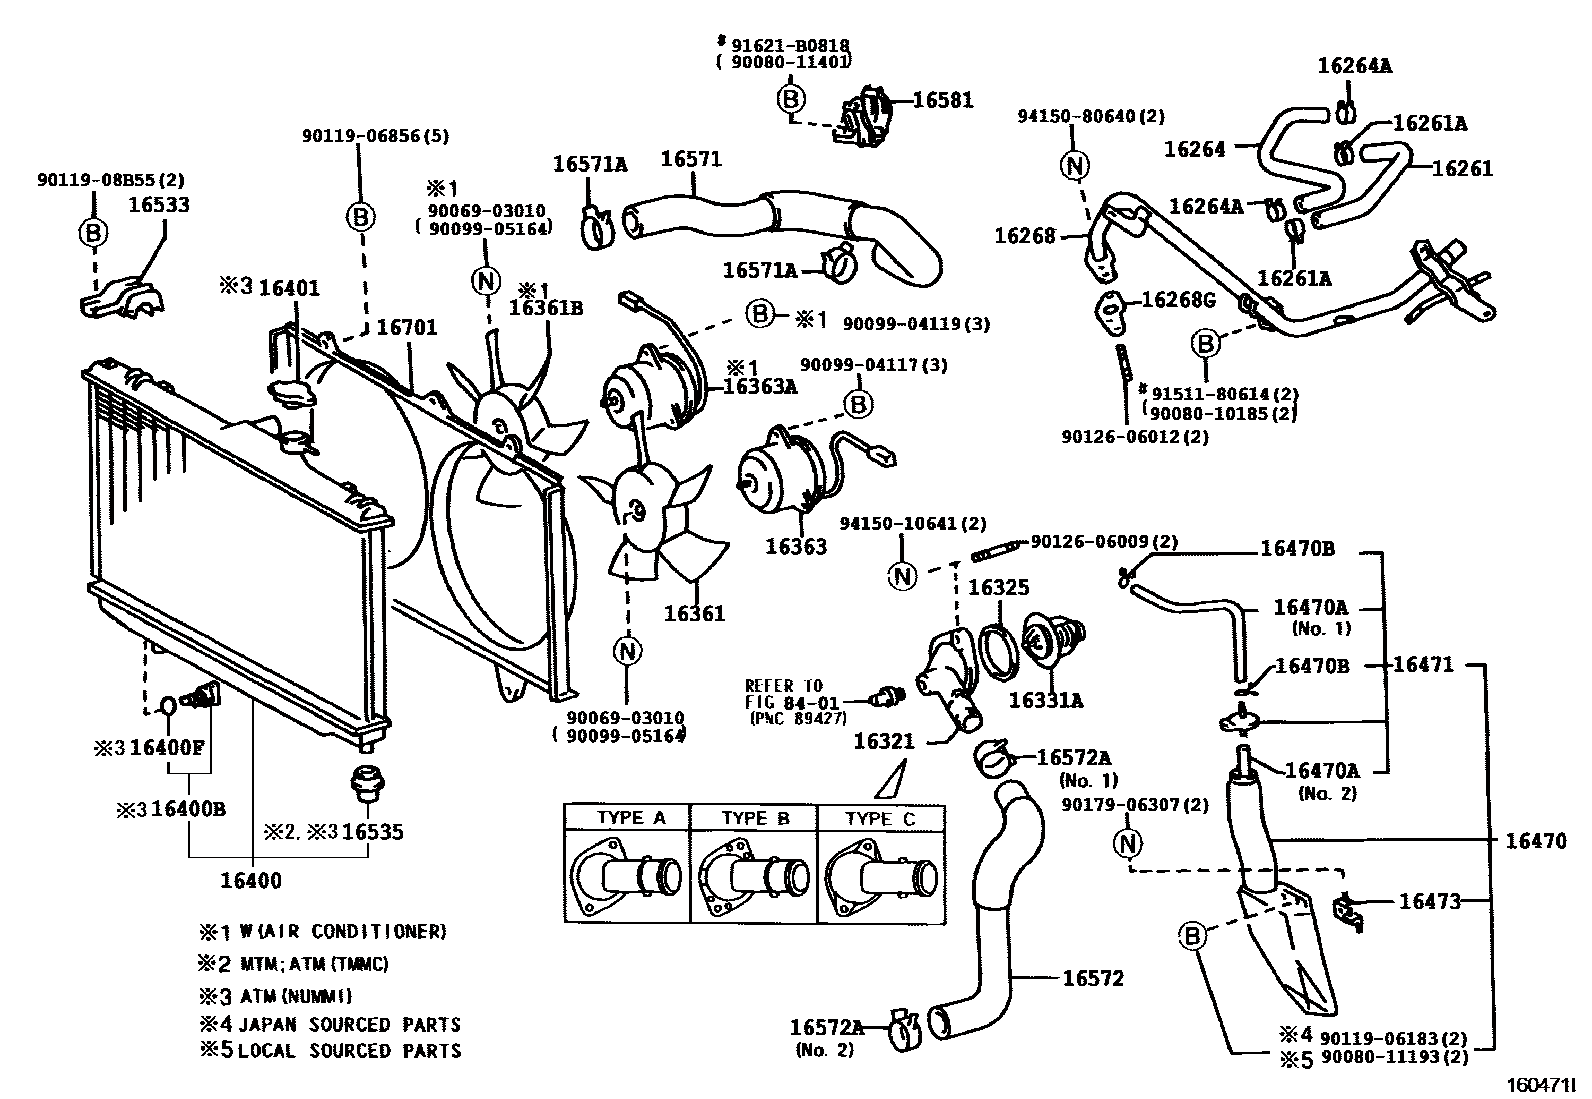 1990 honda civic wiring diagram with Honda Civic Fuel Line Replacement on Showthread additionally 93 Honda Accord Fuel Pump Relay Location as well Oil Pressure Sending Unit Location 90996 as well Honda Civic Headlight Relay Location besides Ford Ltd Front Suspension Diagram.